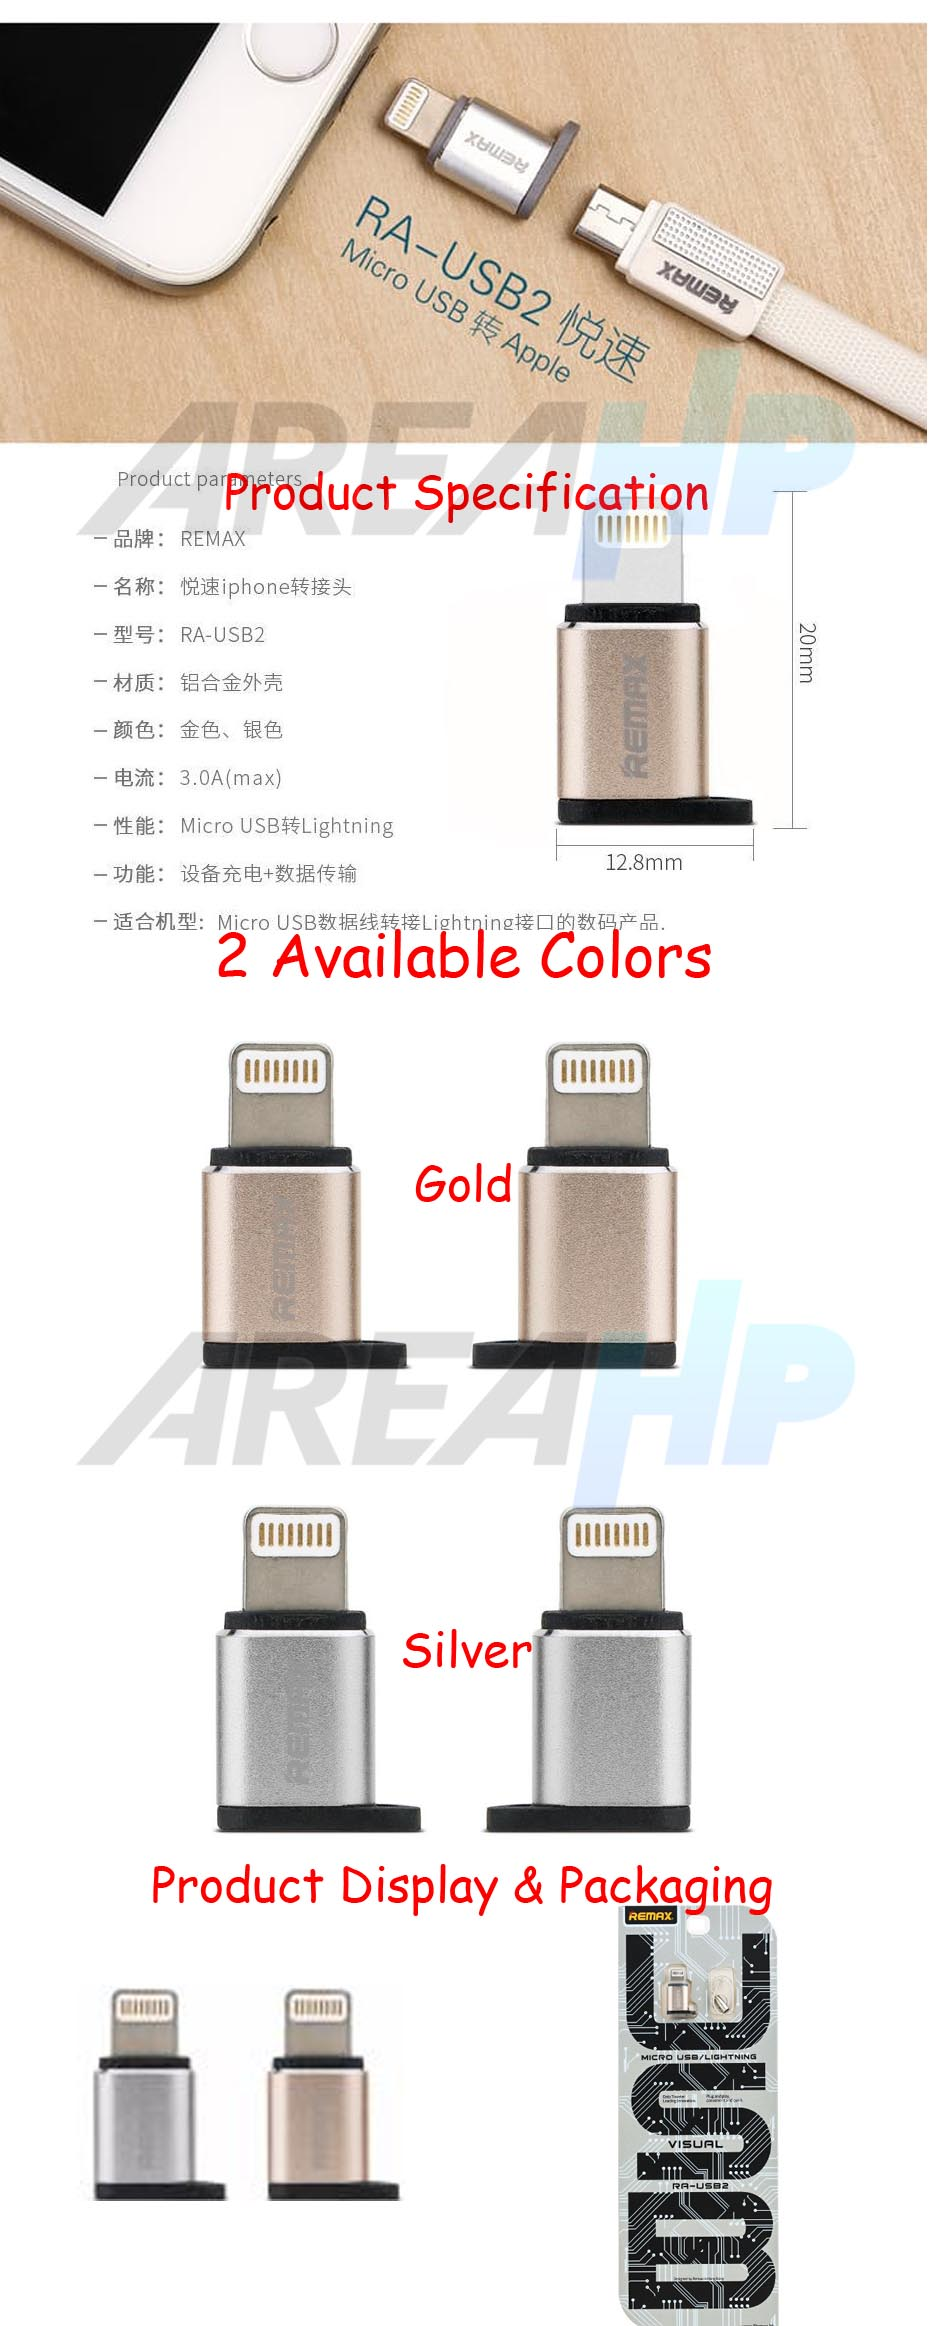 Remax Visual Micro to Apple Lightning USB Adapter Converter RA-USB2 Overview